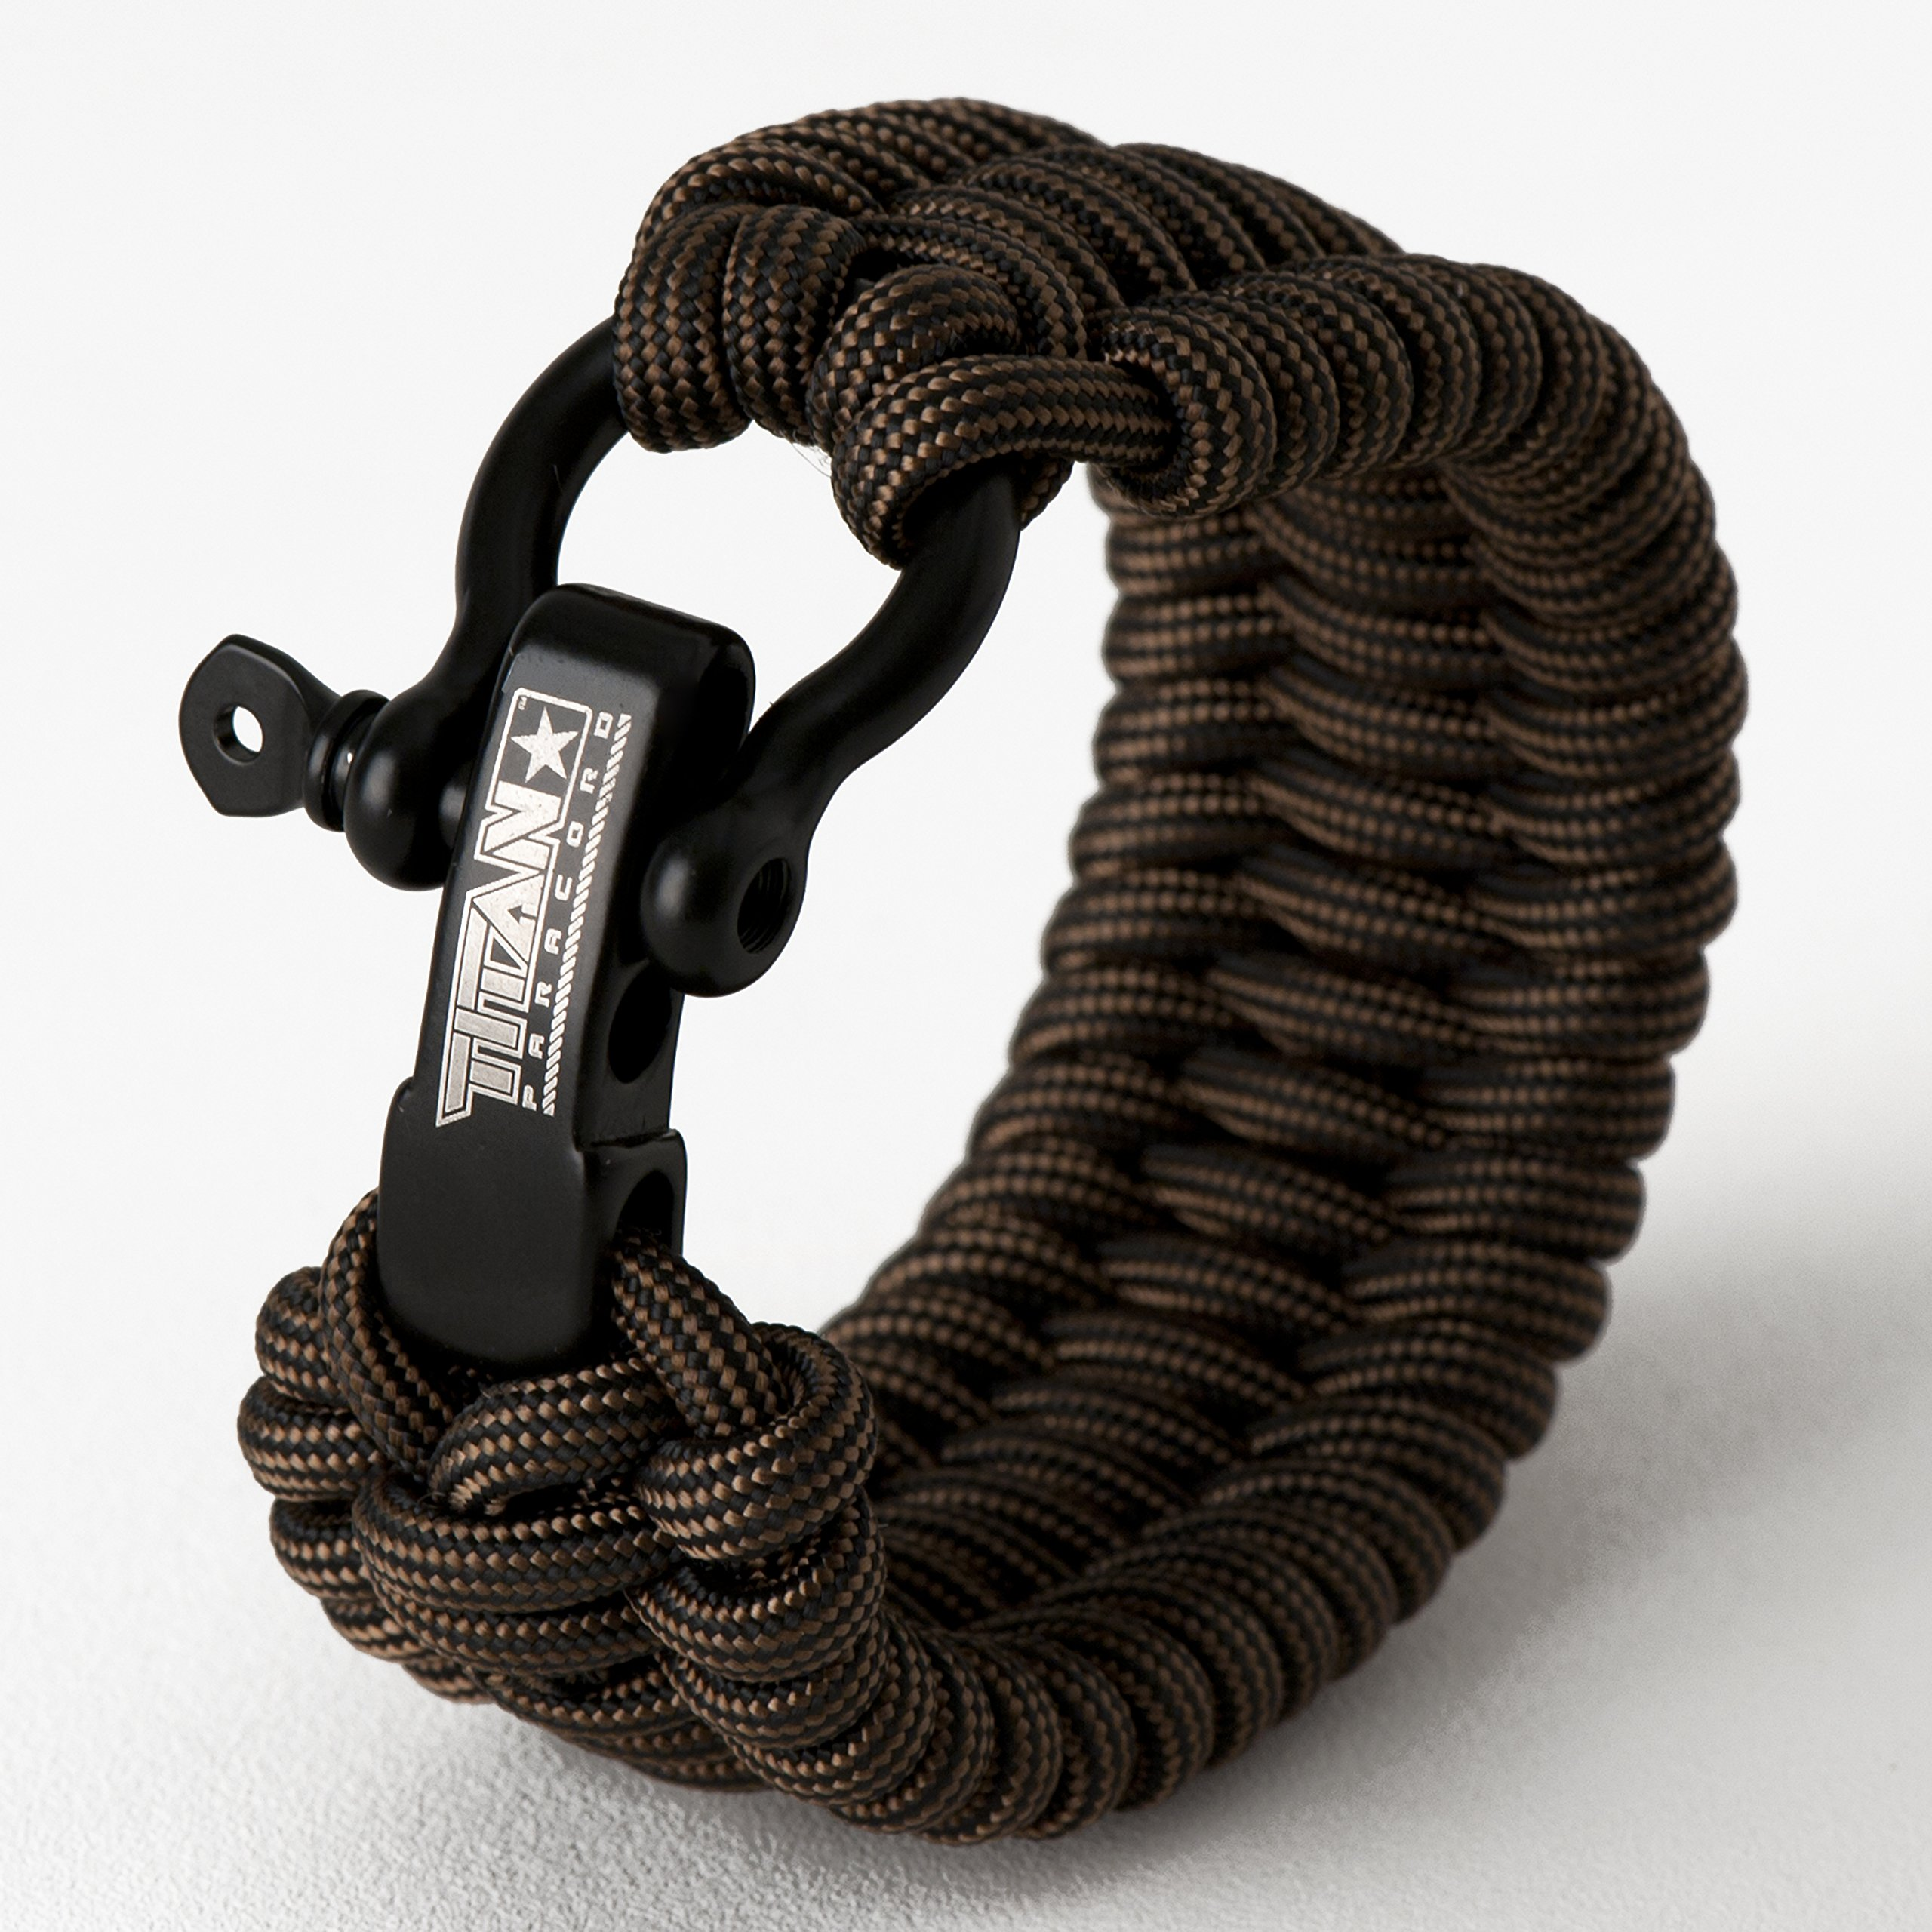 Titan Paracord Survival Bracelet | Bronze | Large (Fits 8'' - 9'' Wrist) | Made with Authentic Patented SurvivorCord (550 Paracord, Fishing line, Snare Wire, and Waxed Jute for Fires). by Titan Paracord